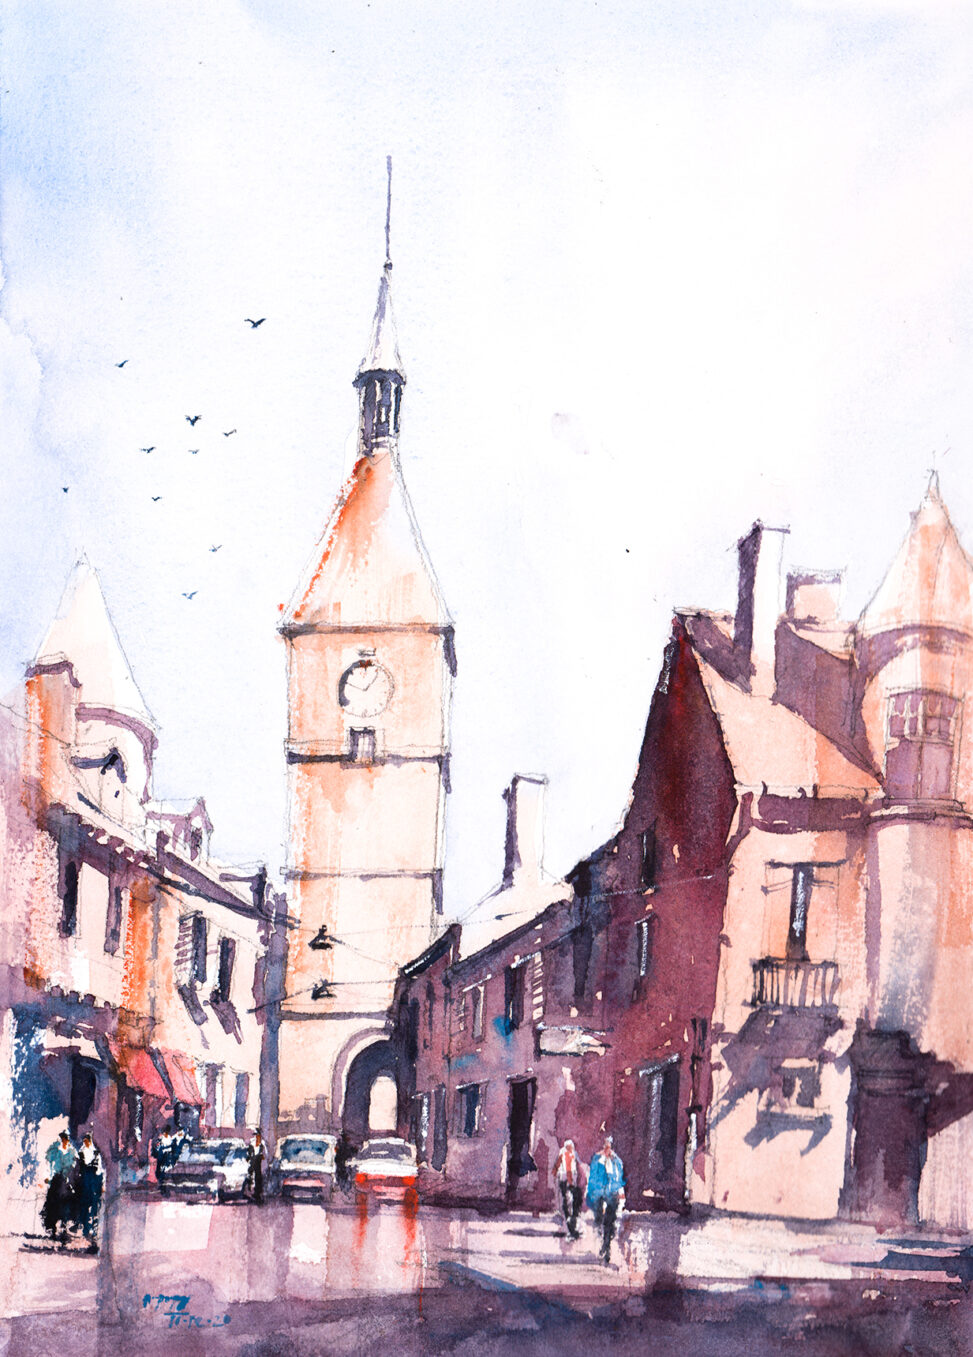 Watercolor Painting of Bugundy, France